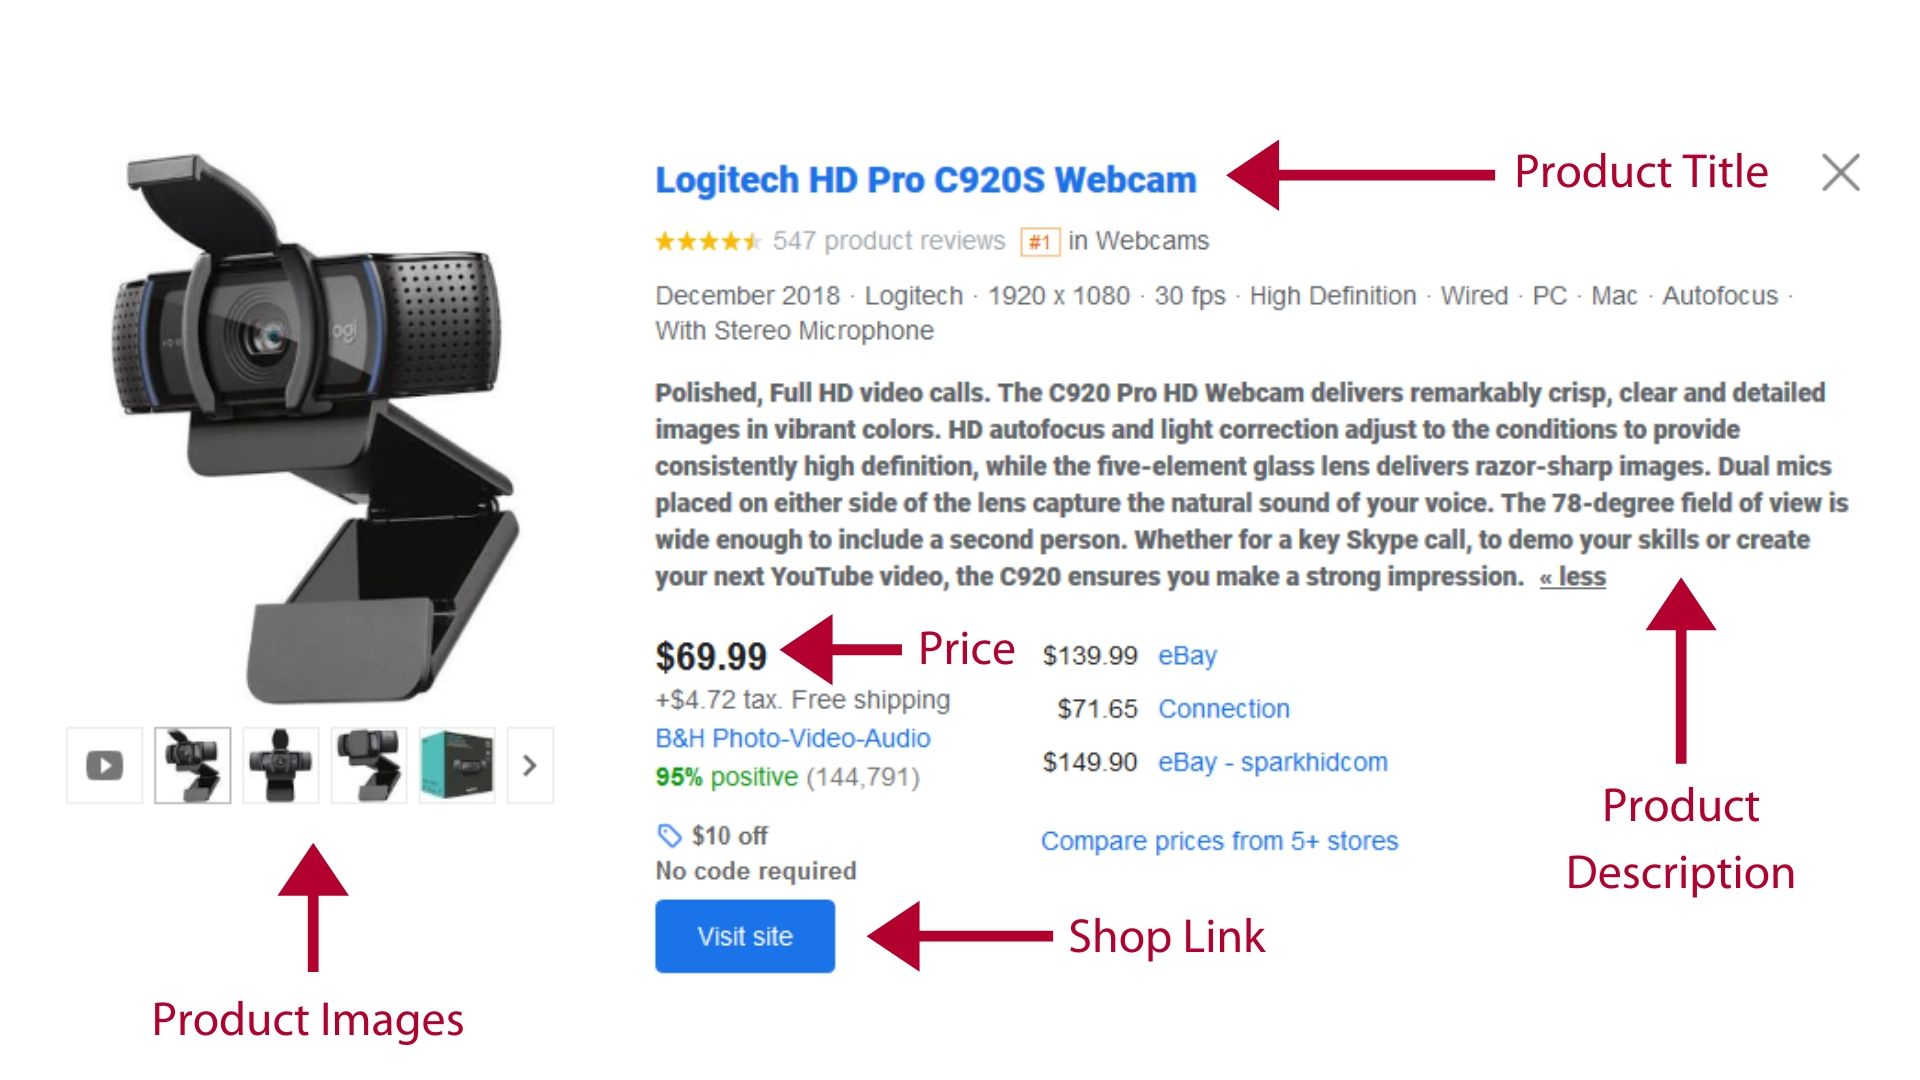 Anatomy of a Google Product Listing